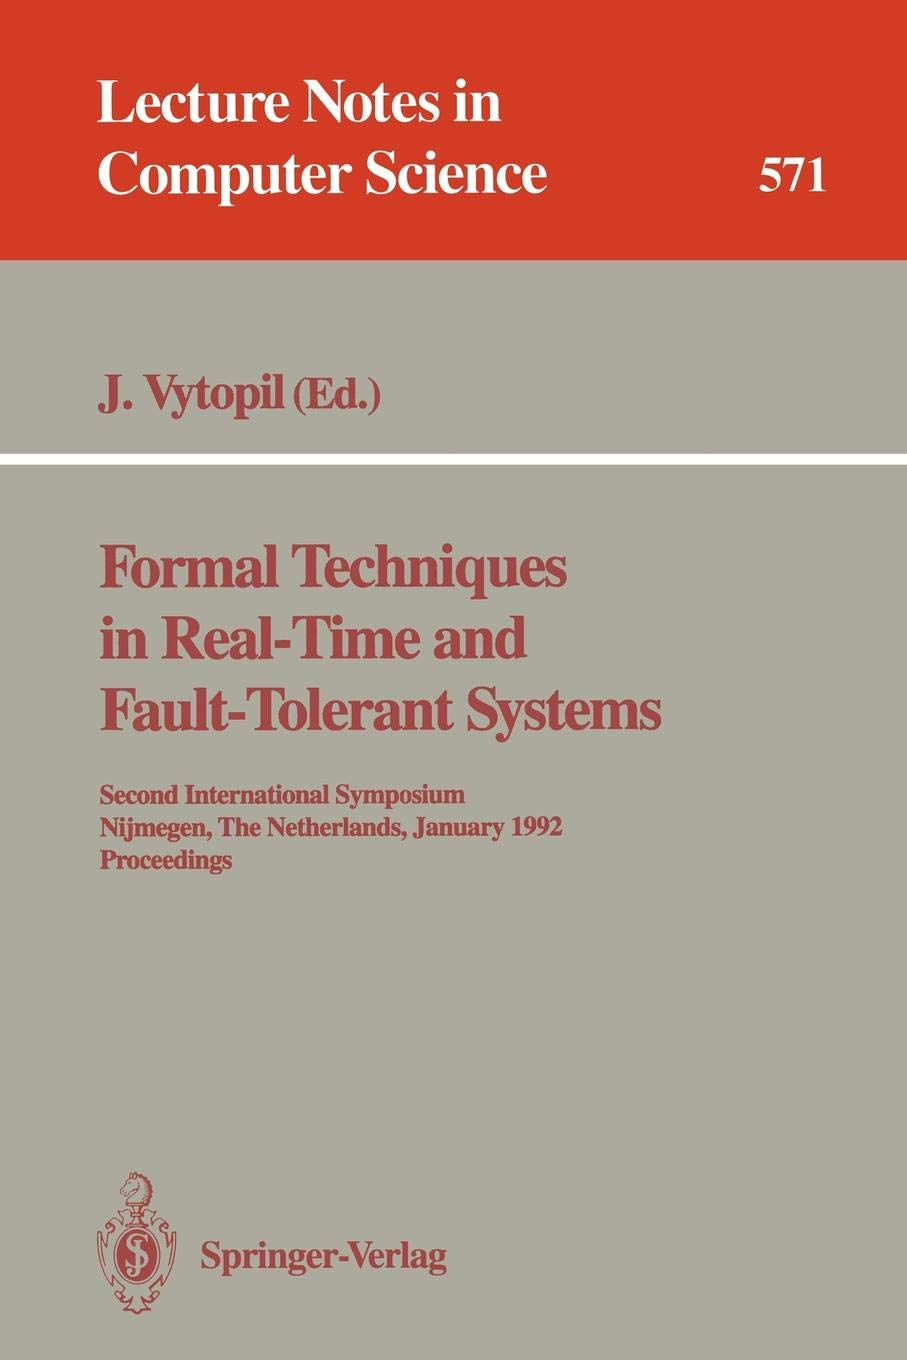 Formal Techniques in Real-Time and Fault-Tolerant